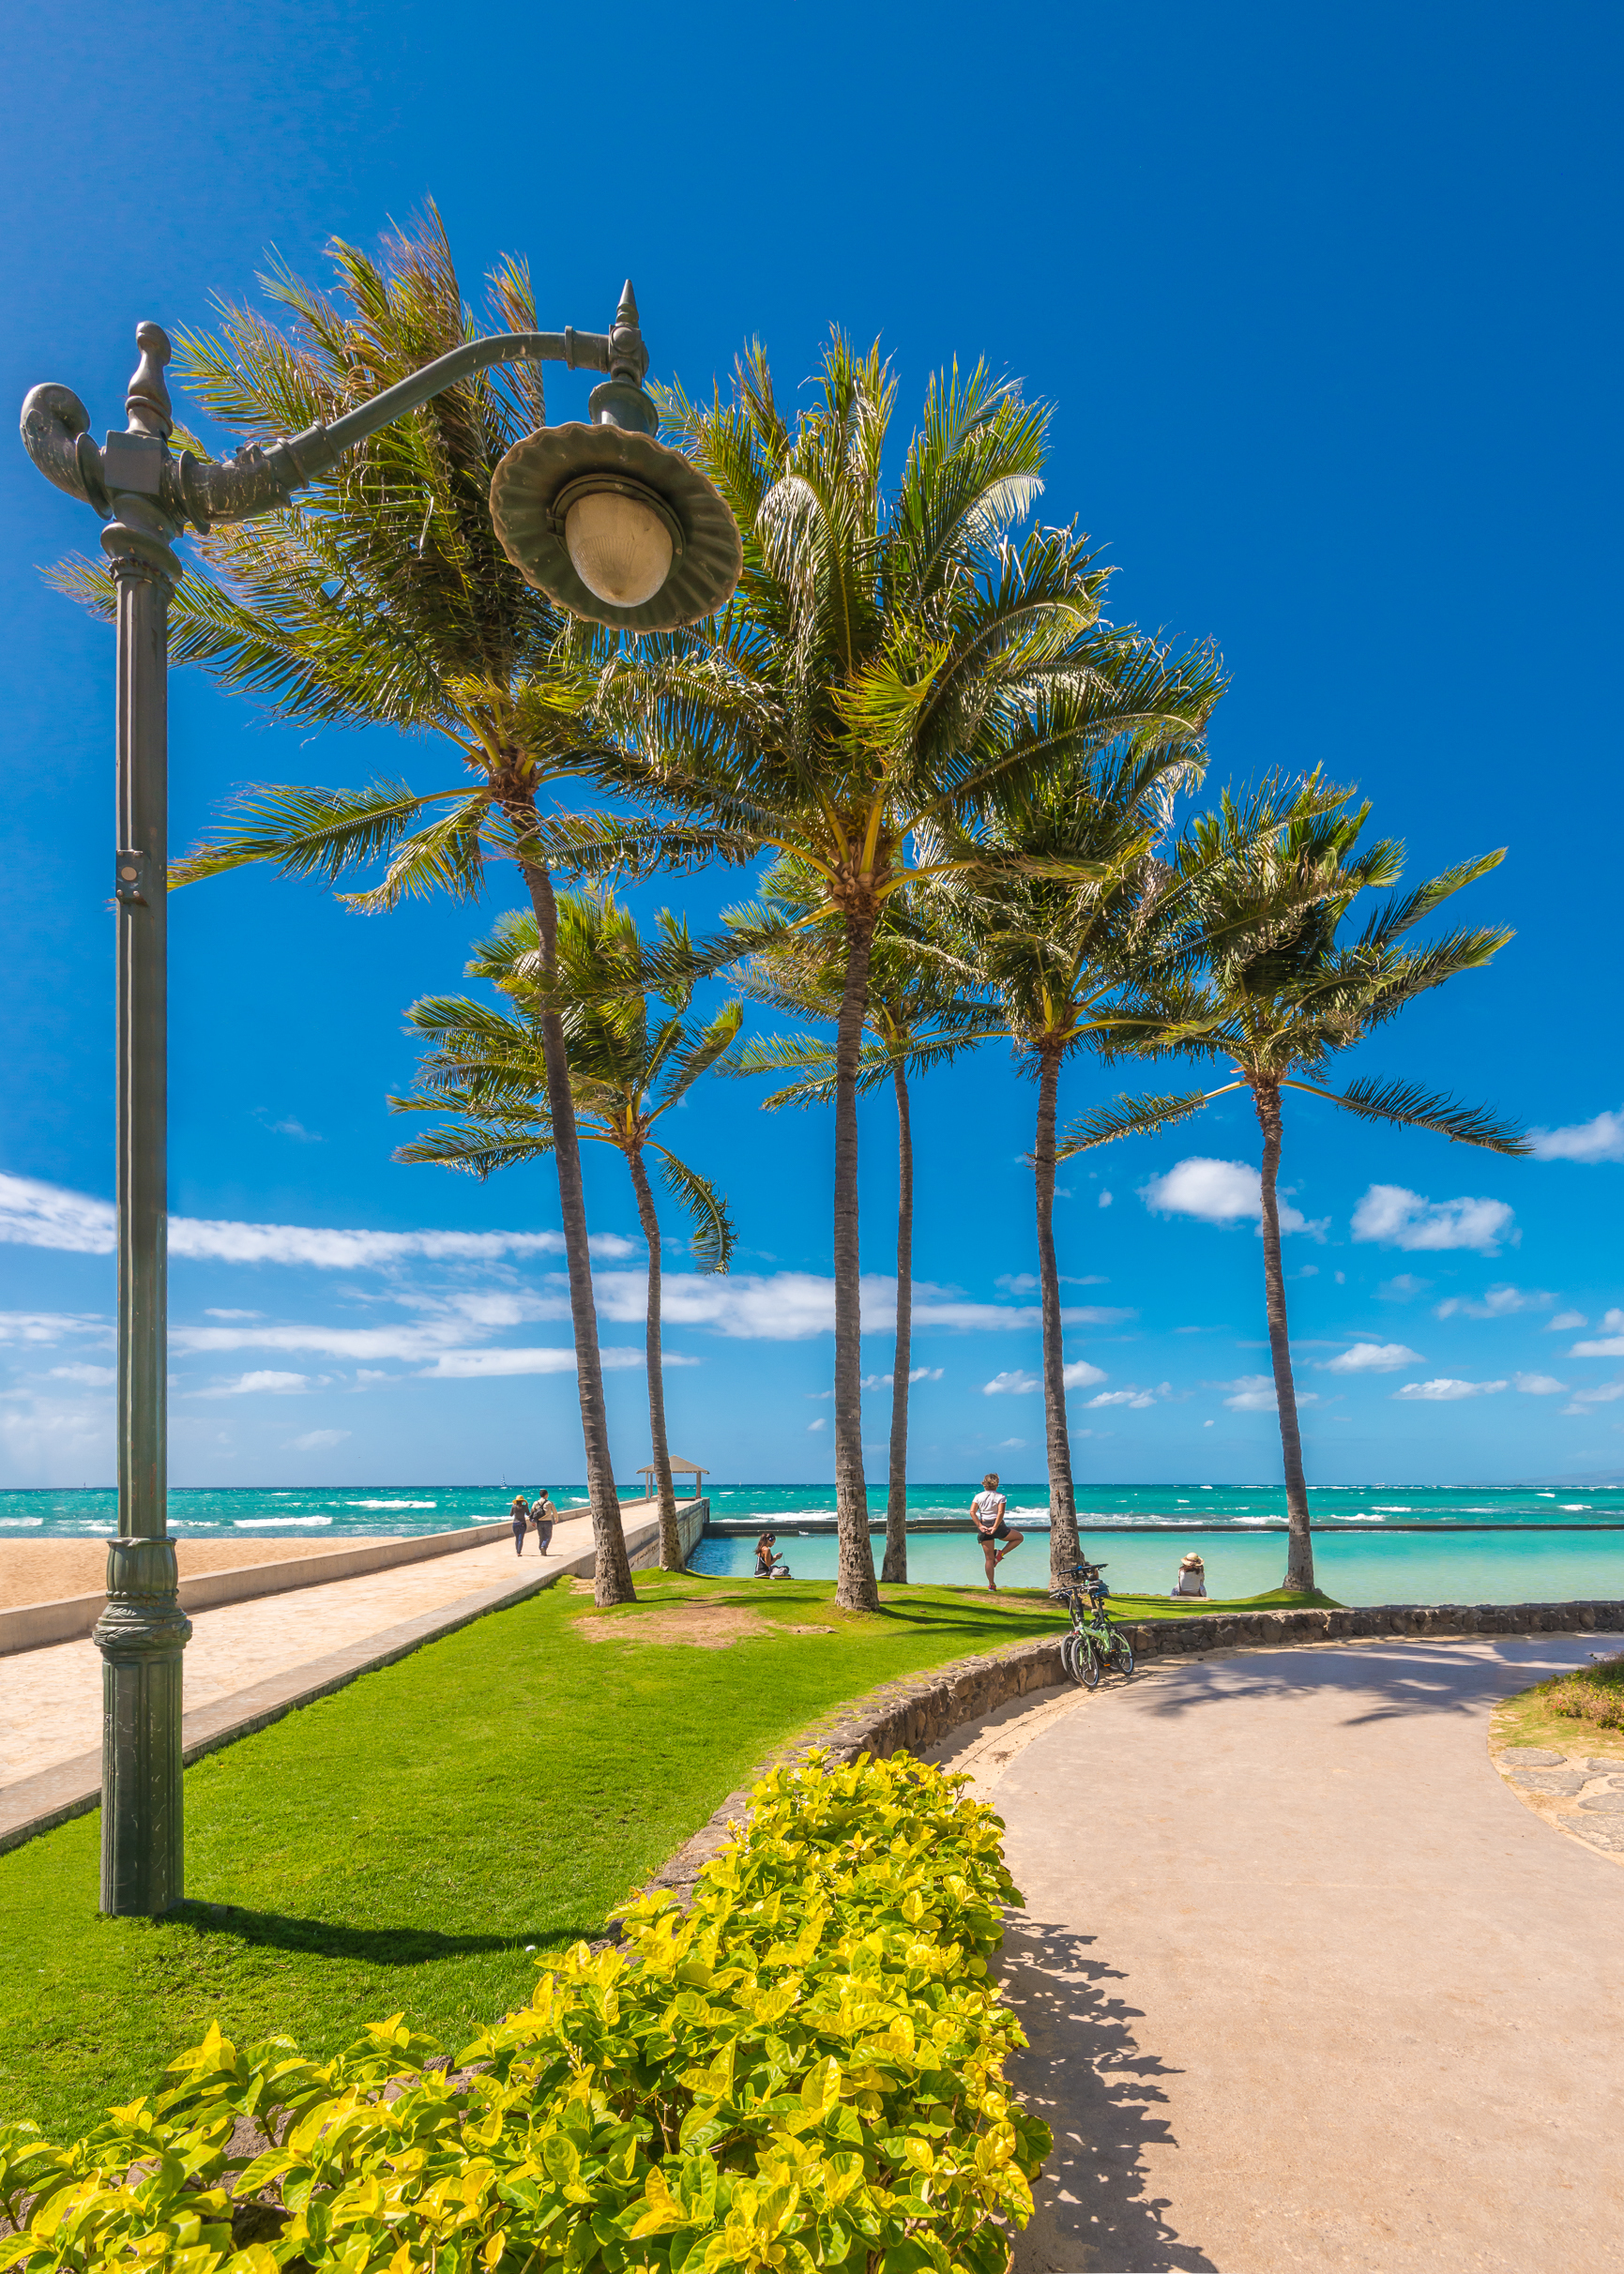 bigstock-Waikiki-Beach-in-Honolulu-Haw-113427734.jpg